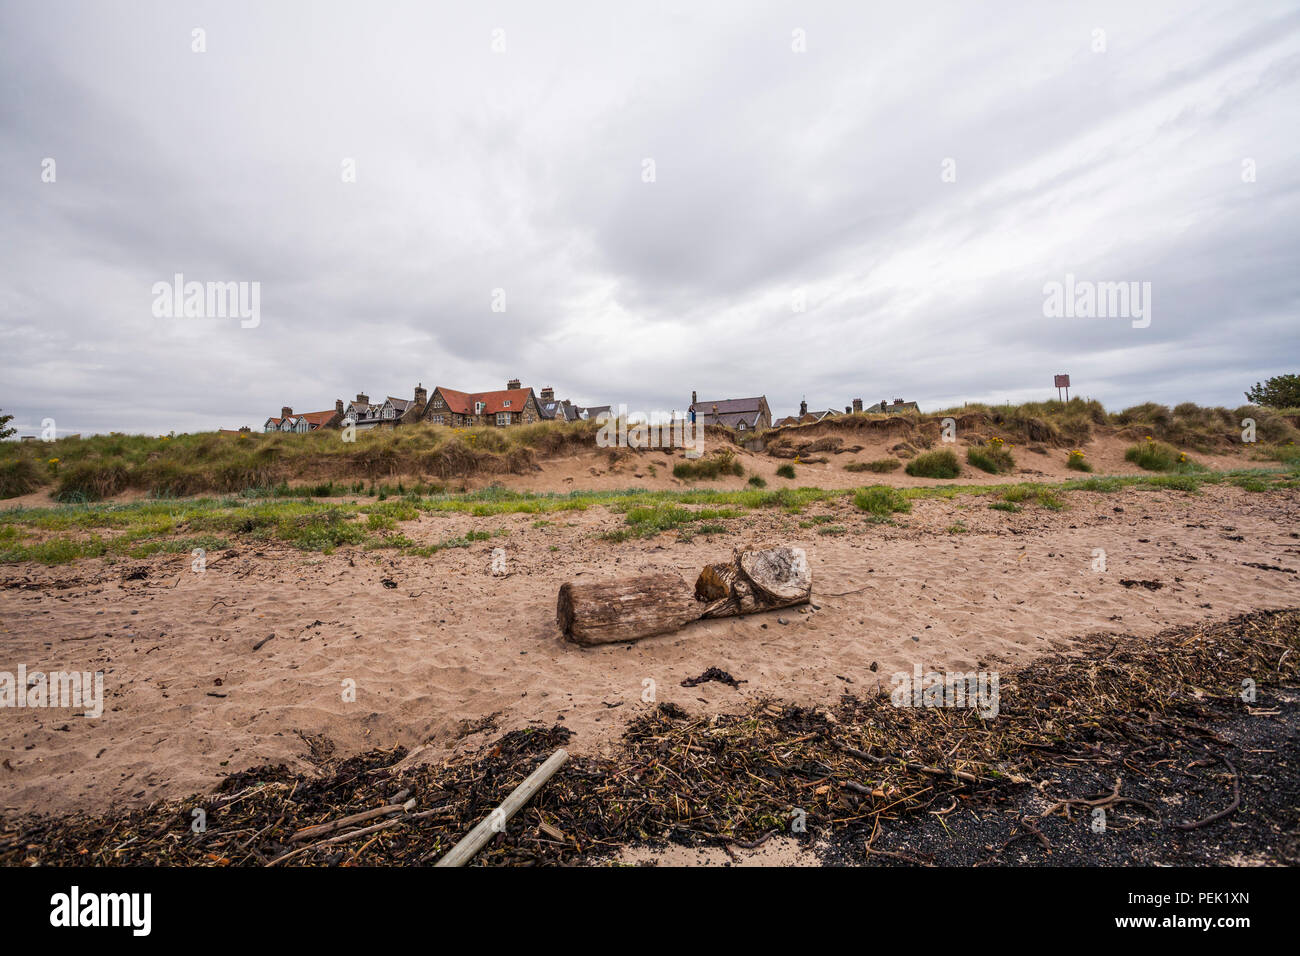 The beach and houses on the coast at Alnmouth,Northumberland,England,UK - Stock Image